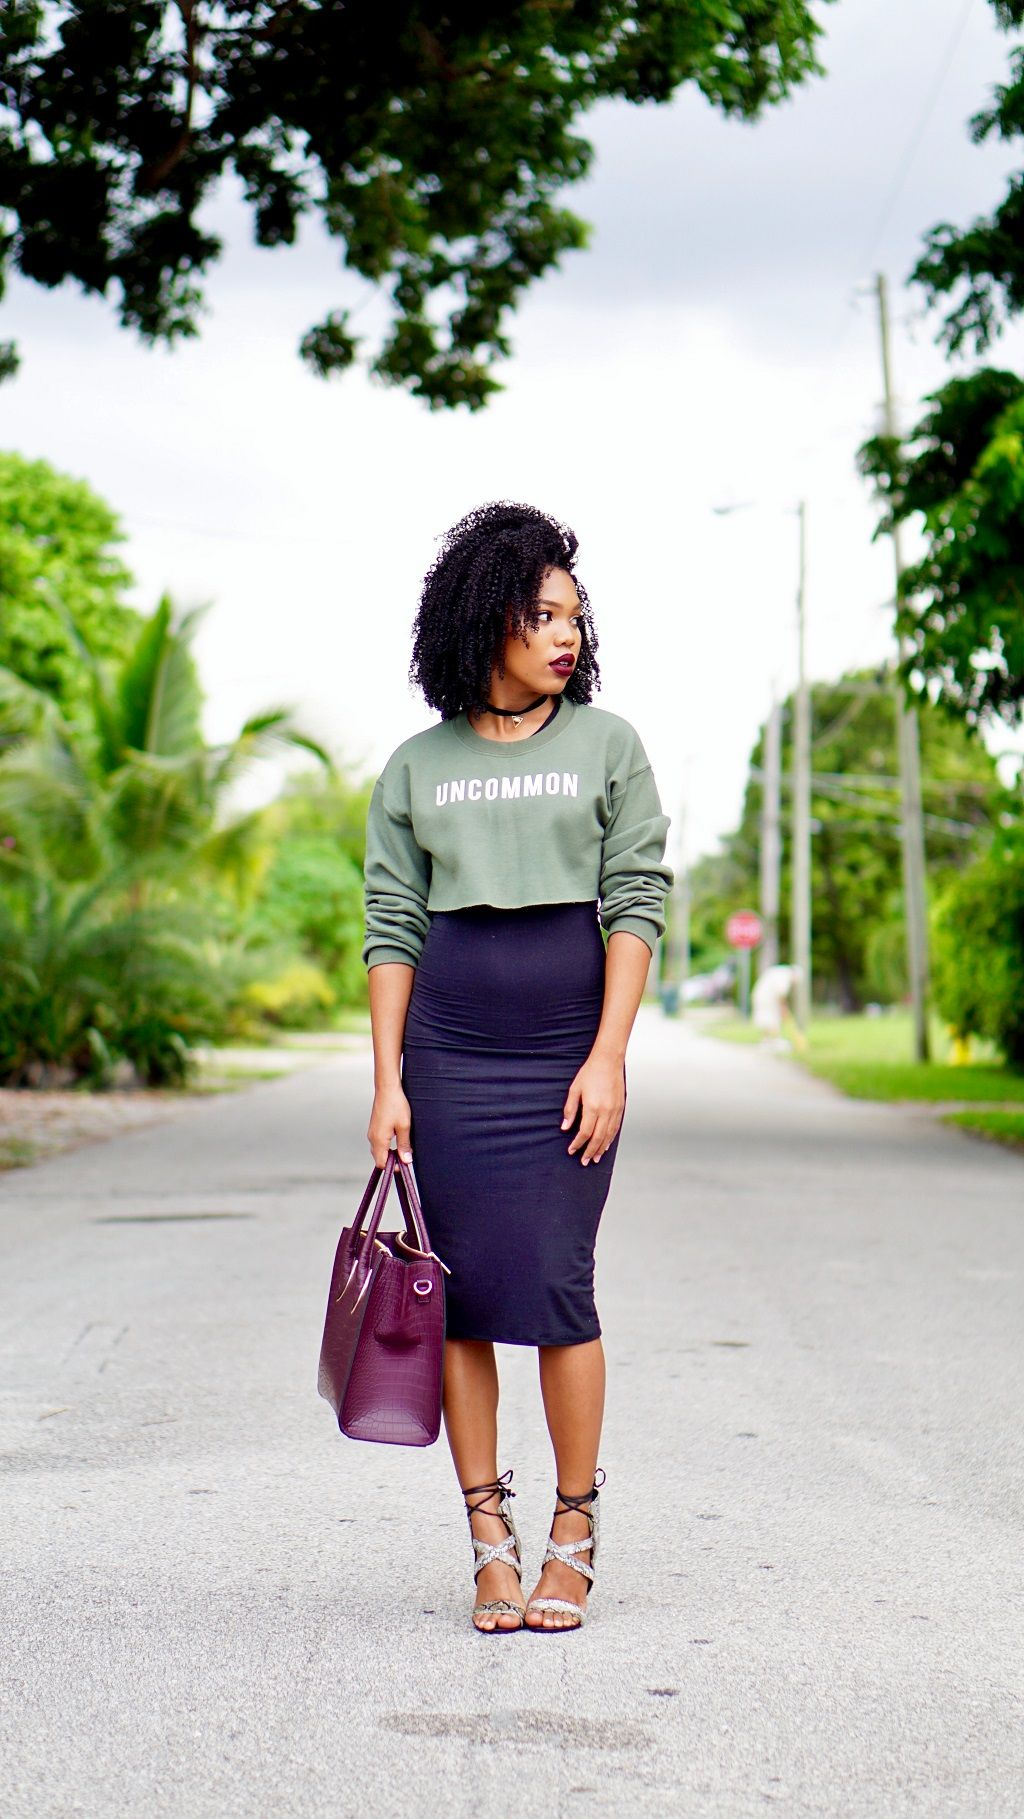 Olive Cropped Sweater Fall Inspired Outfit Midi Bodycon Dress Natashaleeds Stylishlee 9to5chic Outfits Team Fashion Olive Sweater [ 1819 x 1024 Pixel ]